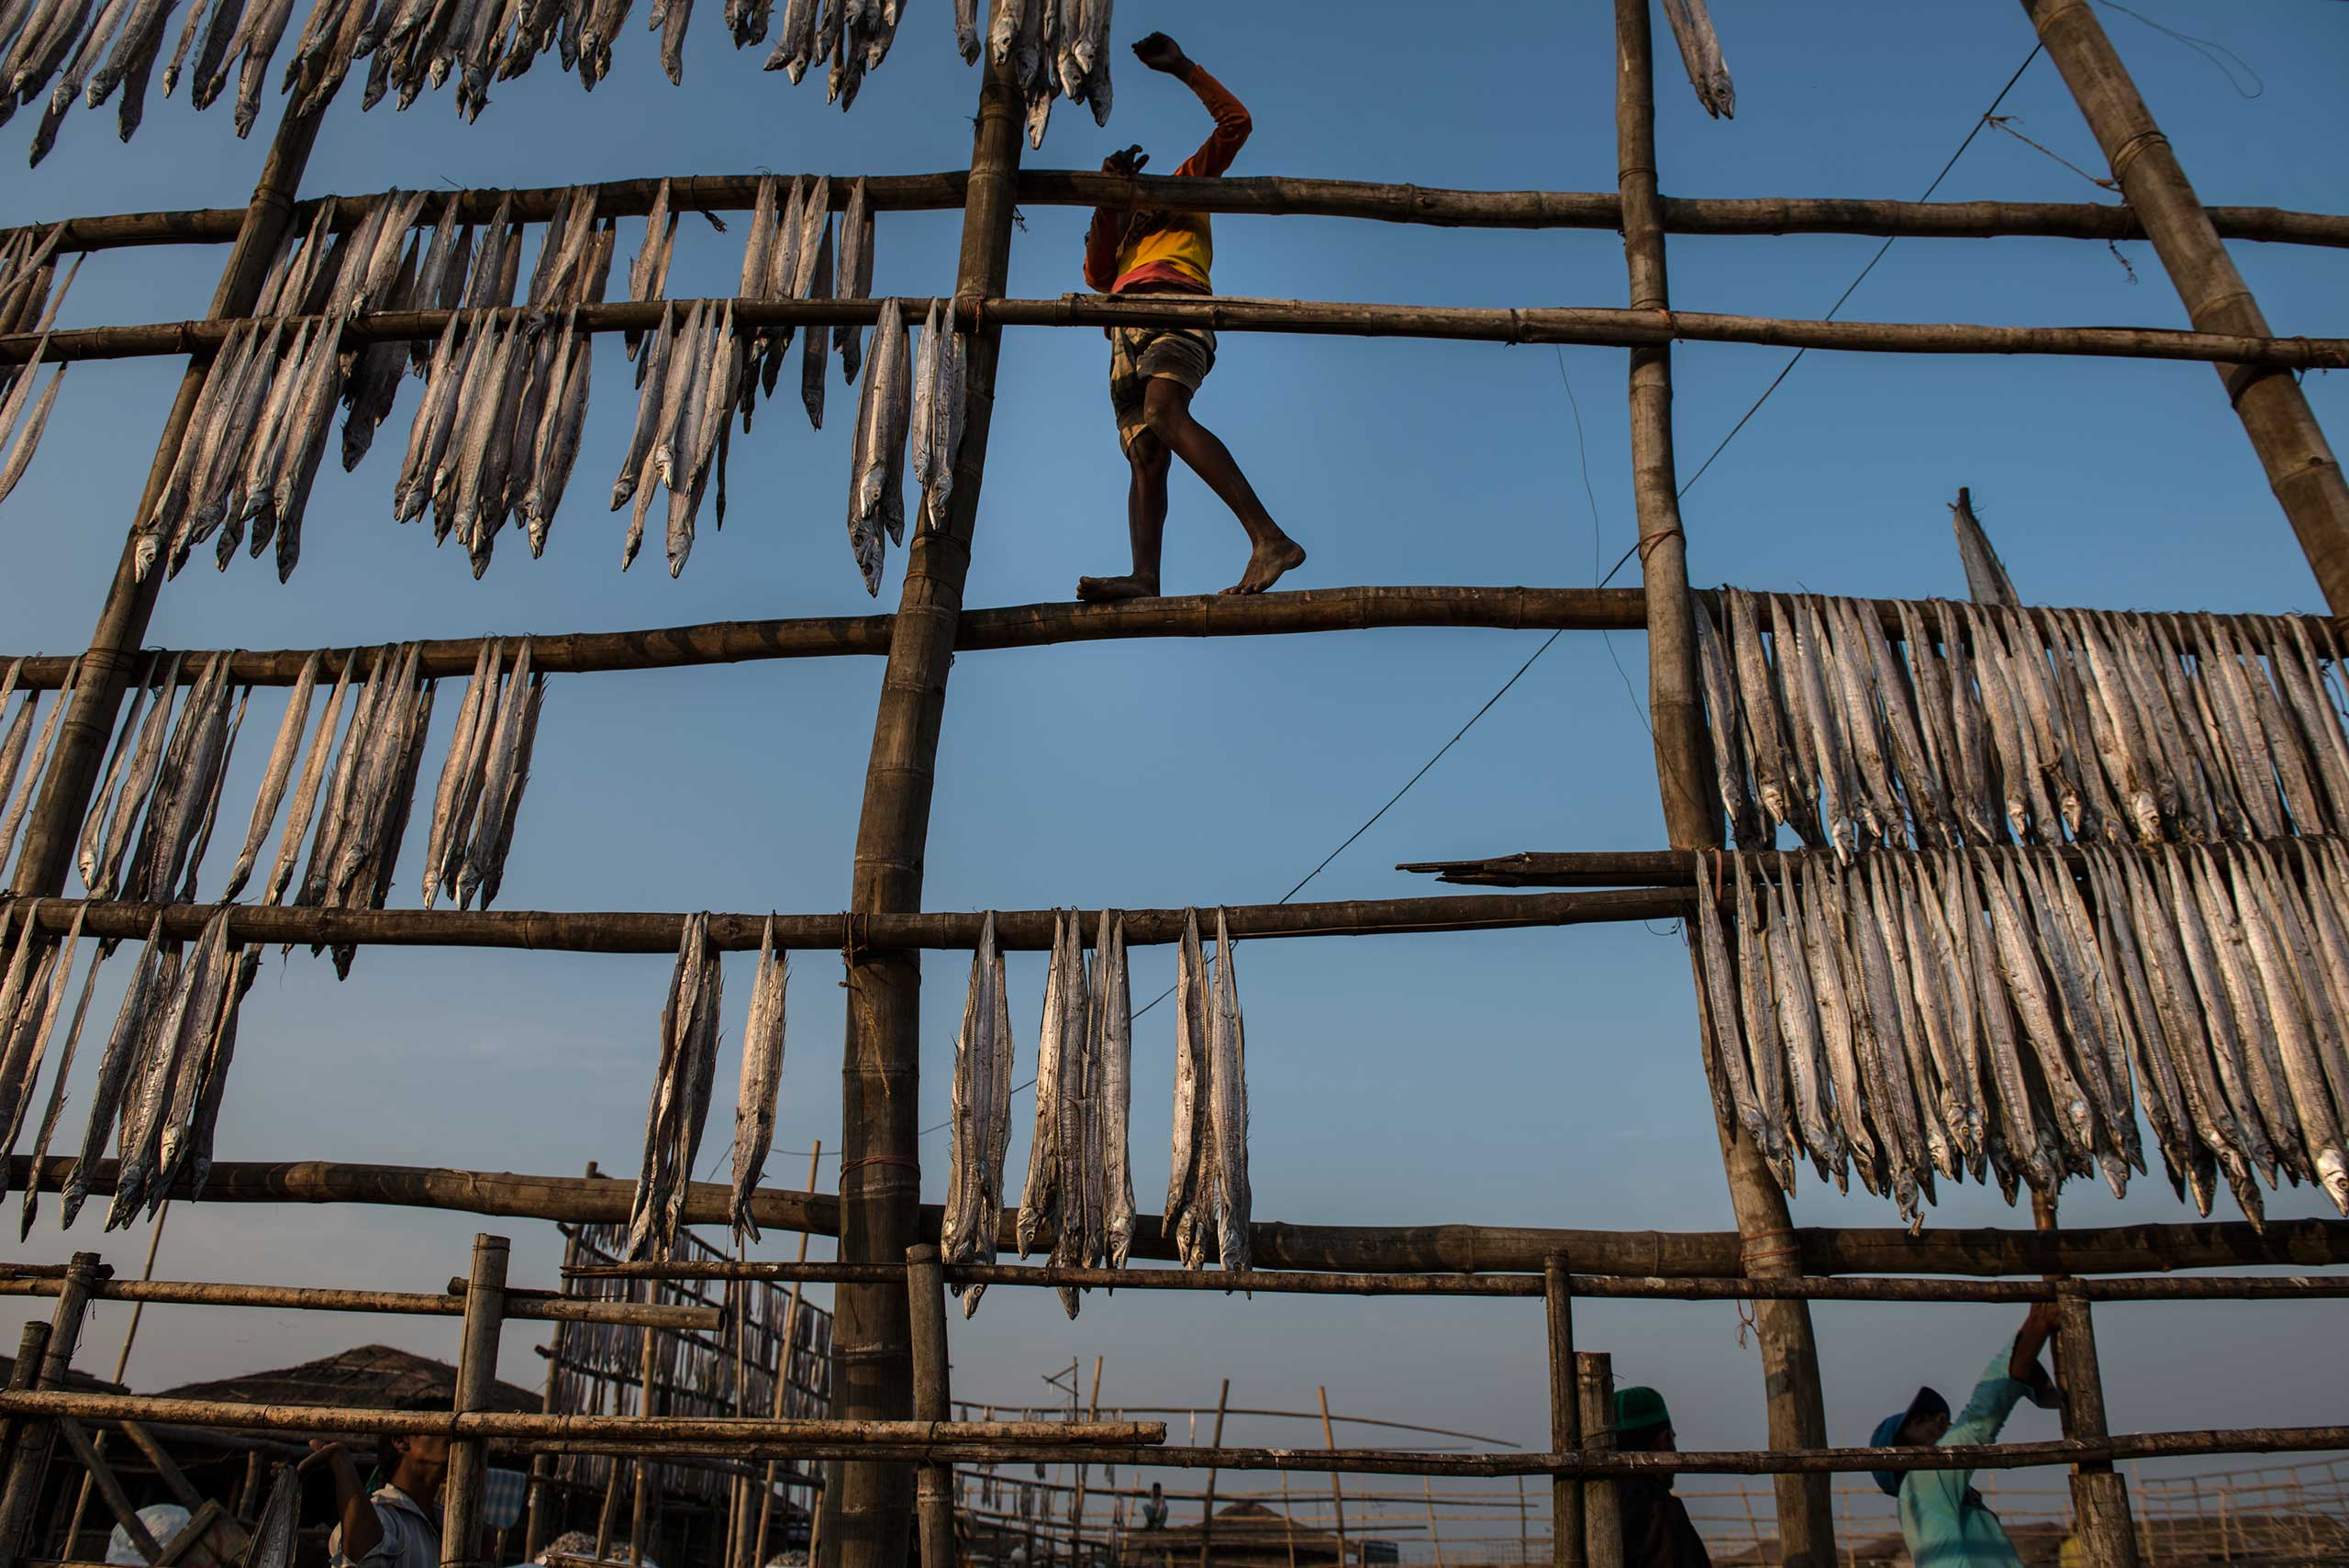 Rohingya work alongside Bangladeshis in the dried fish market along the sea in Naziratek, outside of Cox's Bazaar, in Bangladesh. The Rohingya are systematically marginalized, and forced into formal and makeshift camps across Bangladesh and Myanmar.